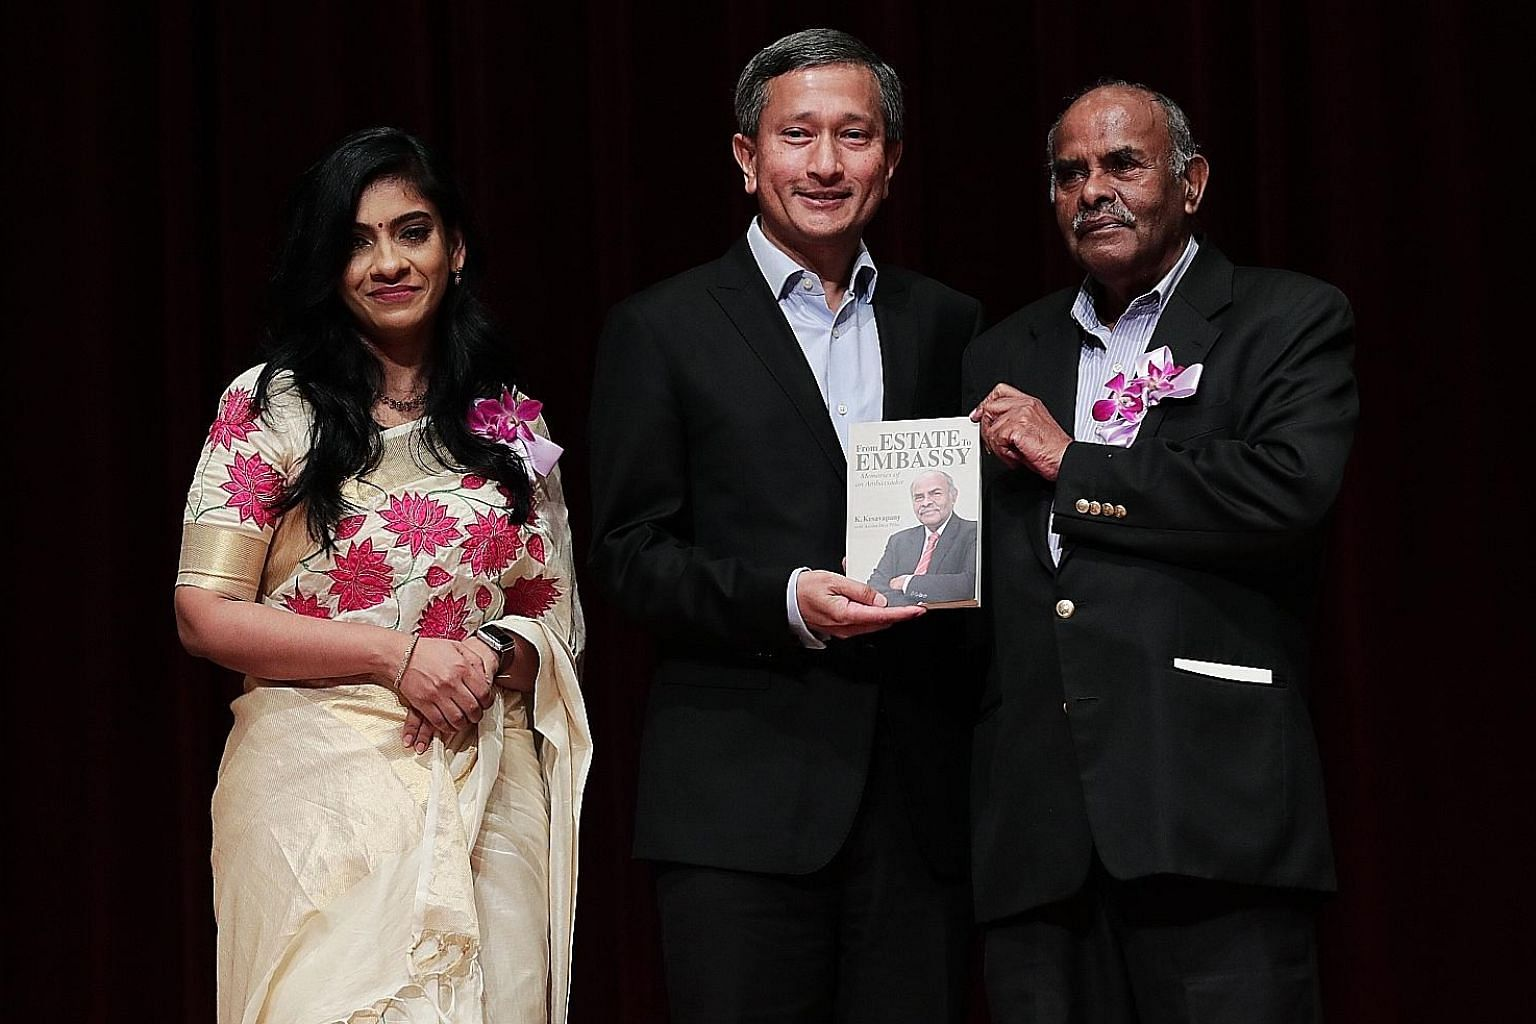 Foreign Minister Vivian Balakrishnan and veteran diplomat K. Kesavapany (right) at the launch of the former high commissioner's biography. The book is co-authored by applied linguist Anitha Devi Pillai (left).